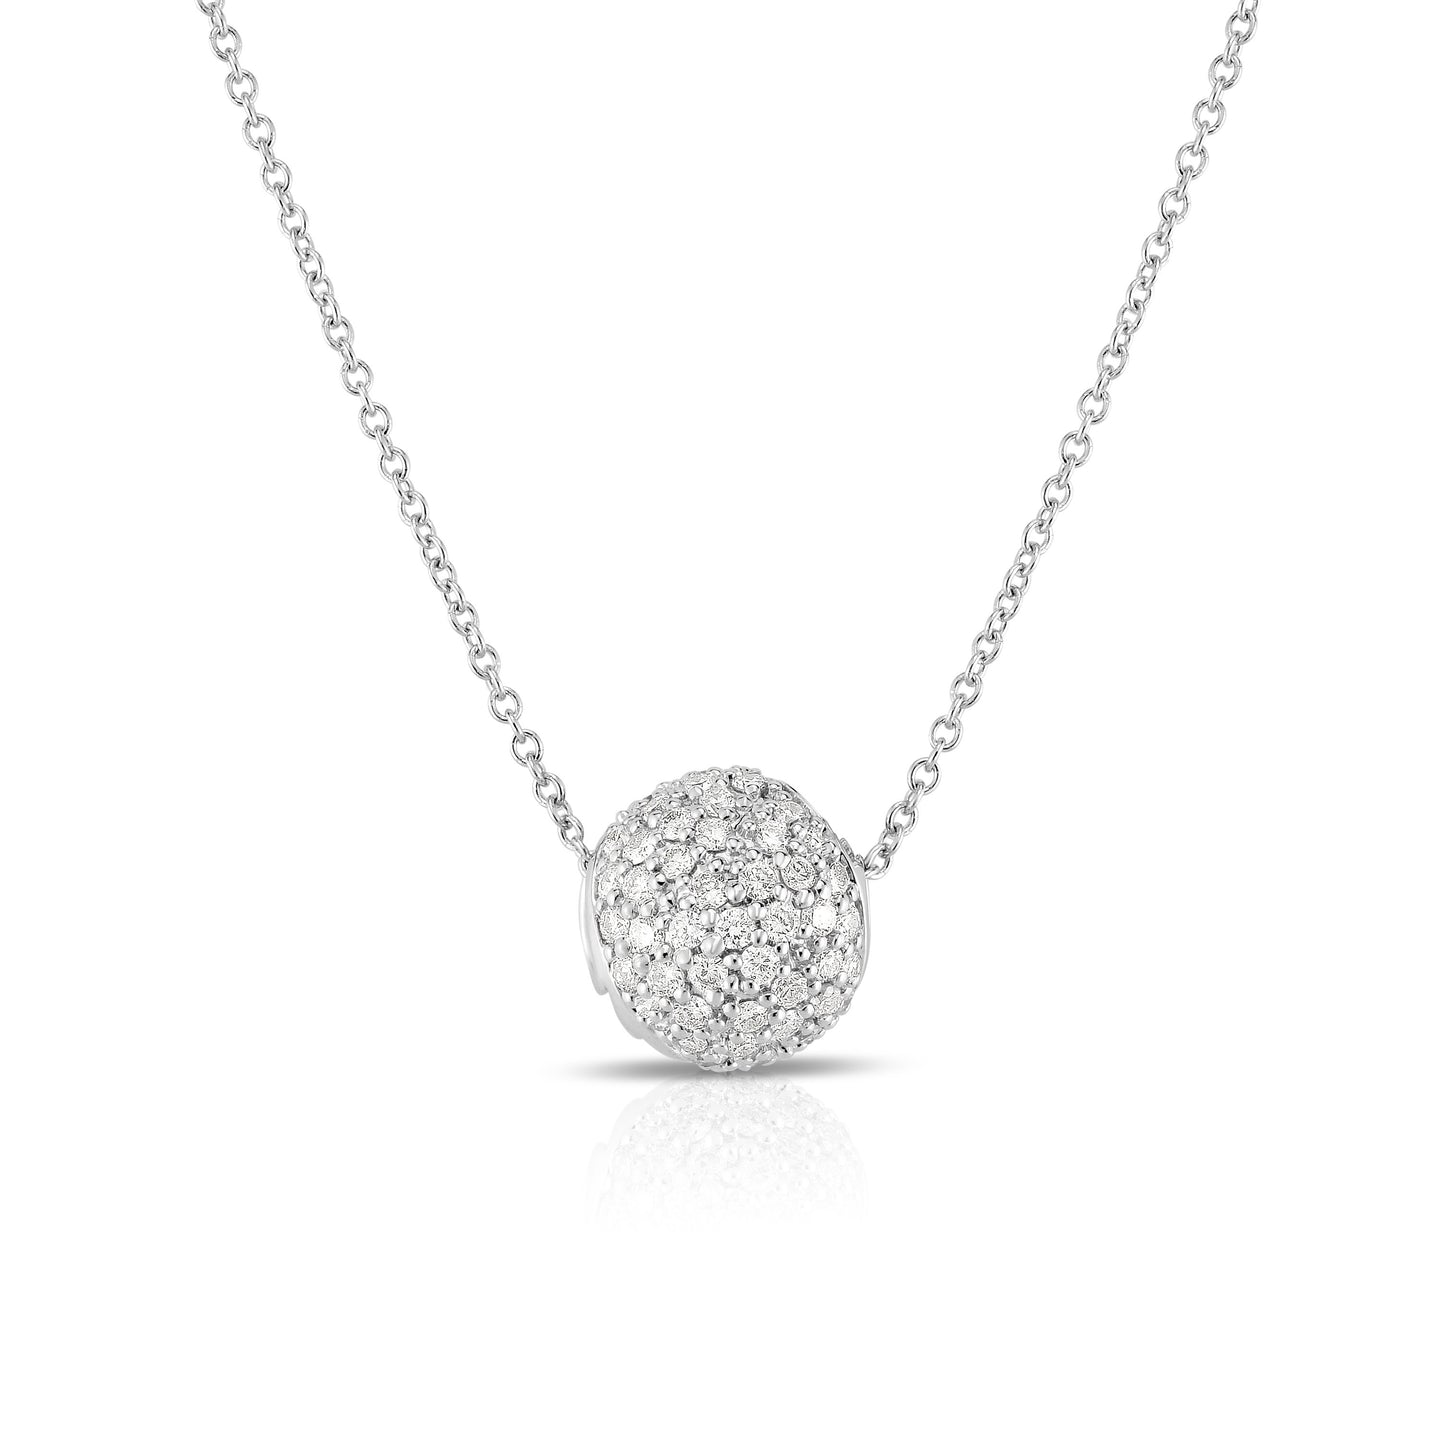 Sabel Collection 14K White Gold Round Circle Diamond Rondelle Pendant